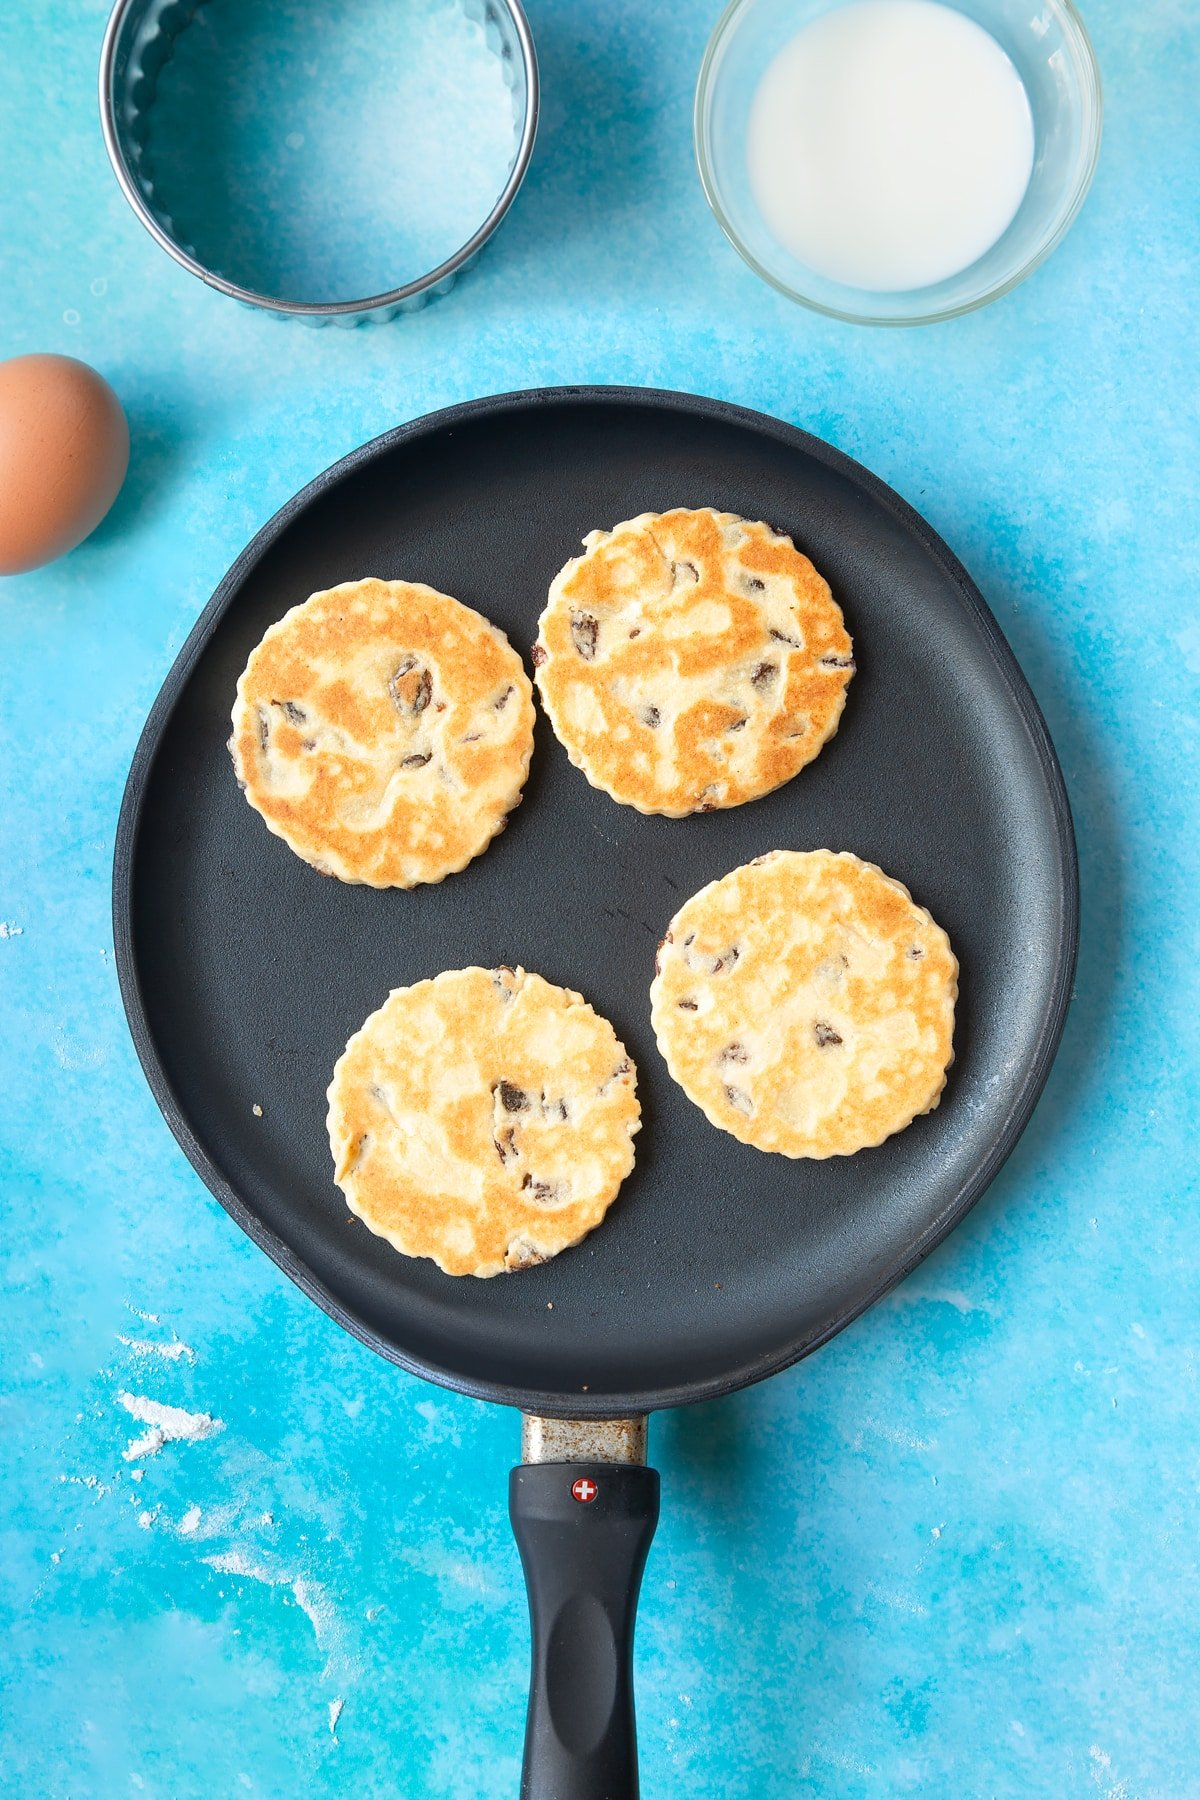 Cooked Welsh cake dough rounds in a hot, flat pan.